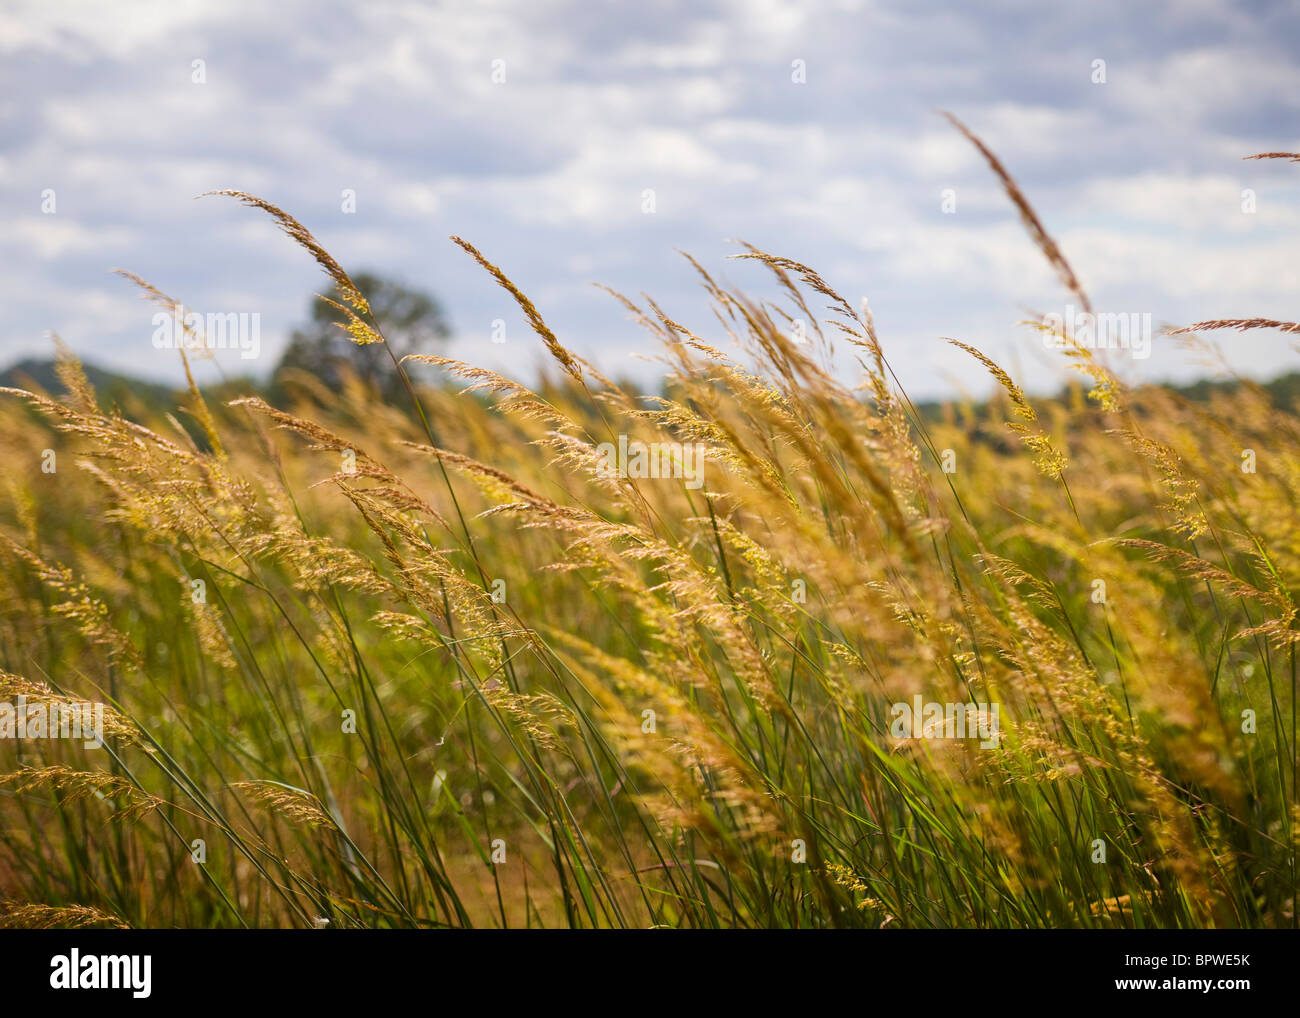 Wild grass field in late summer - Stock Image